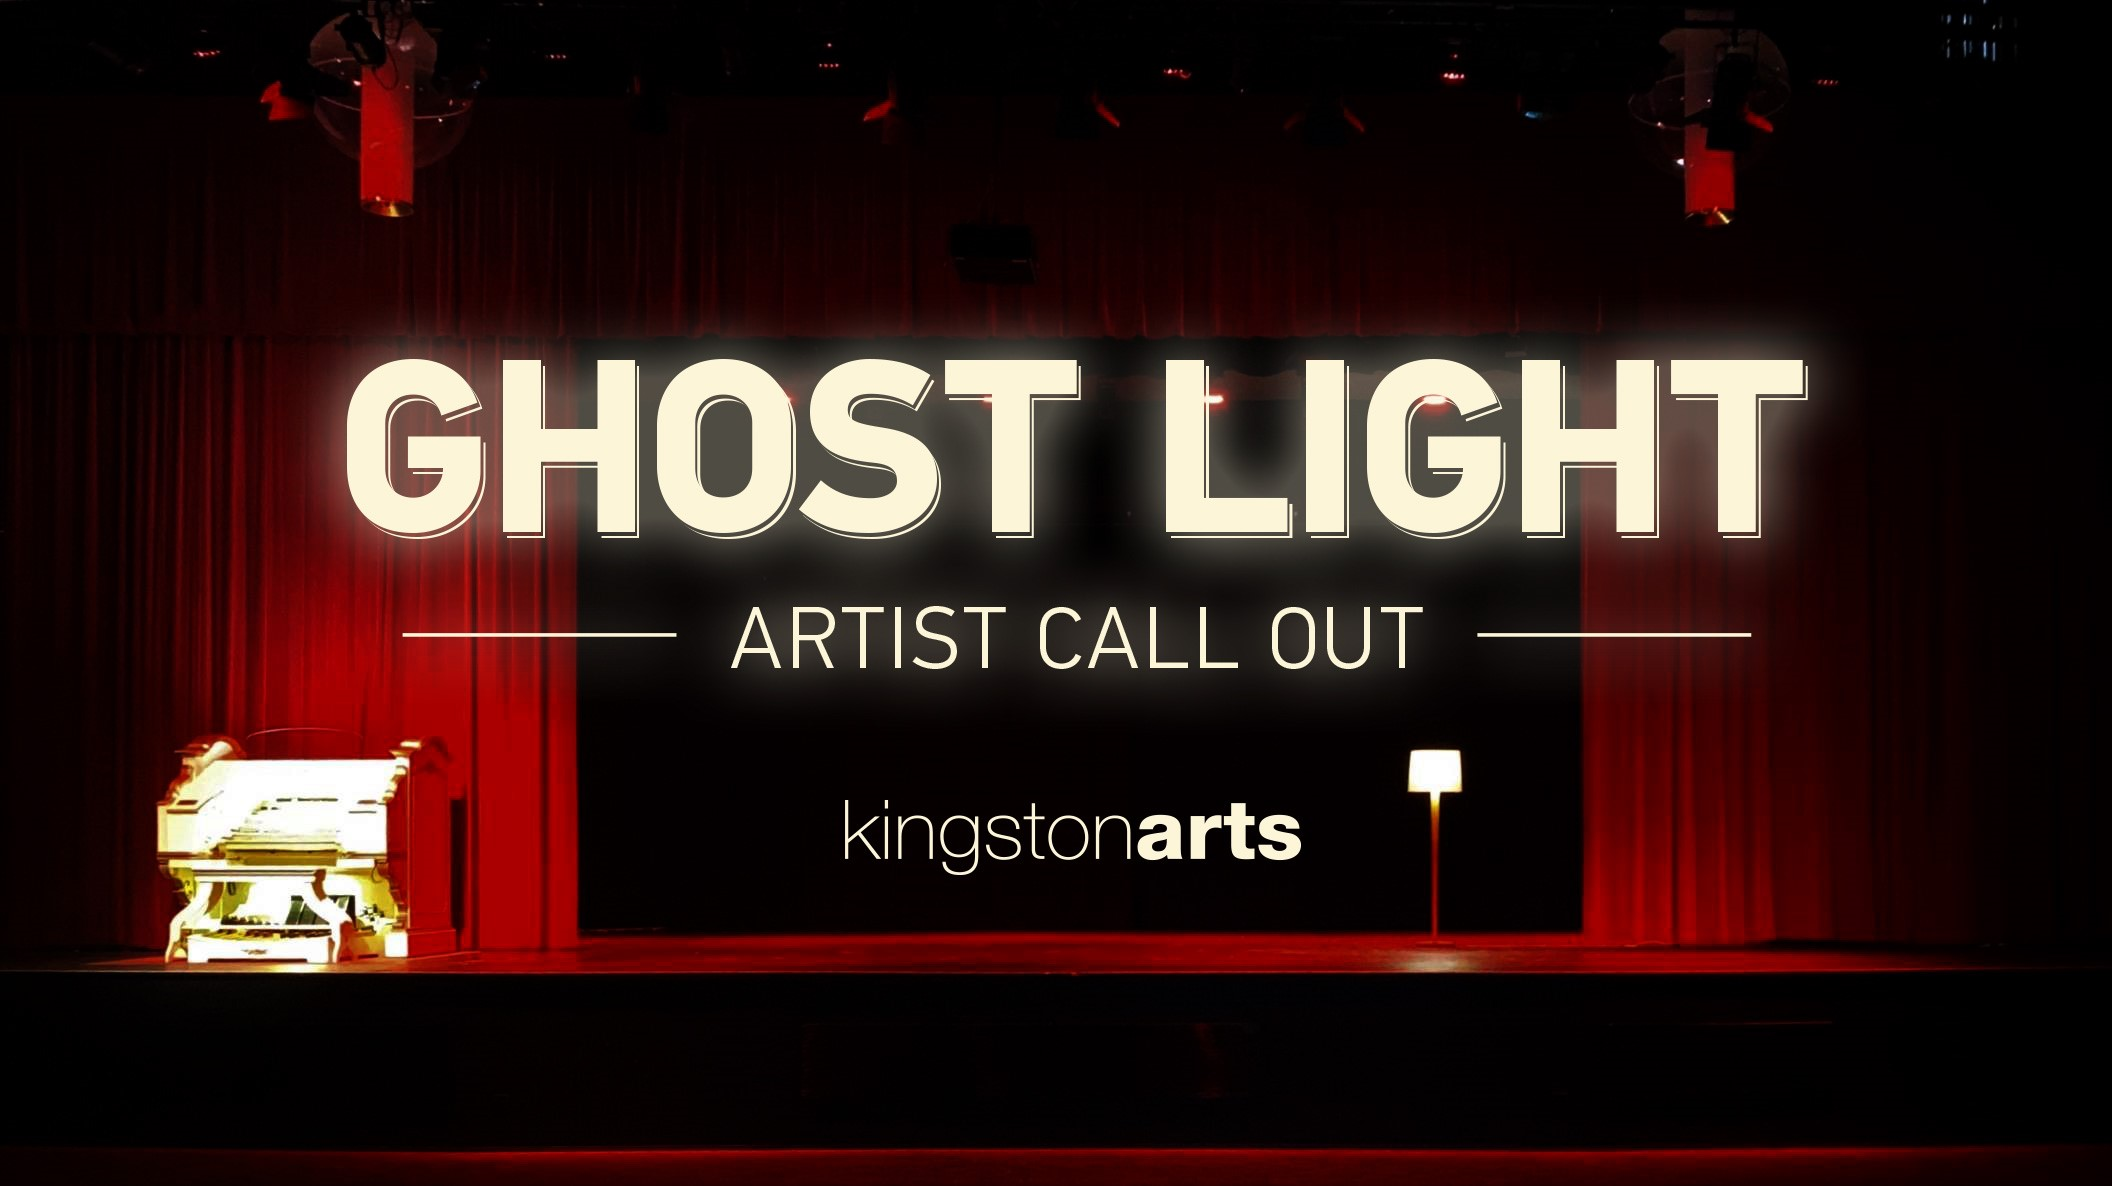 Ghost Light Artist Call Out